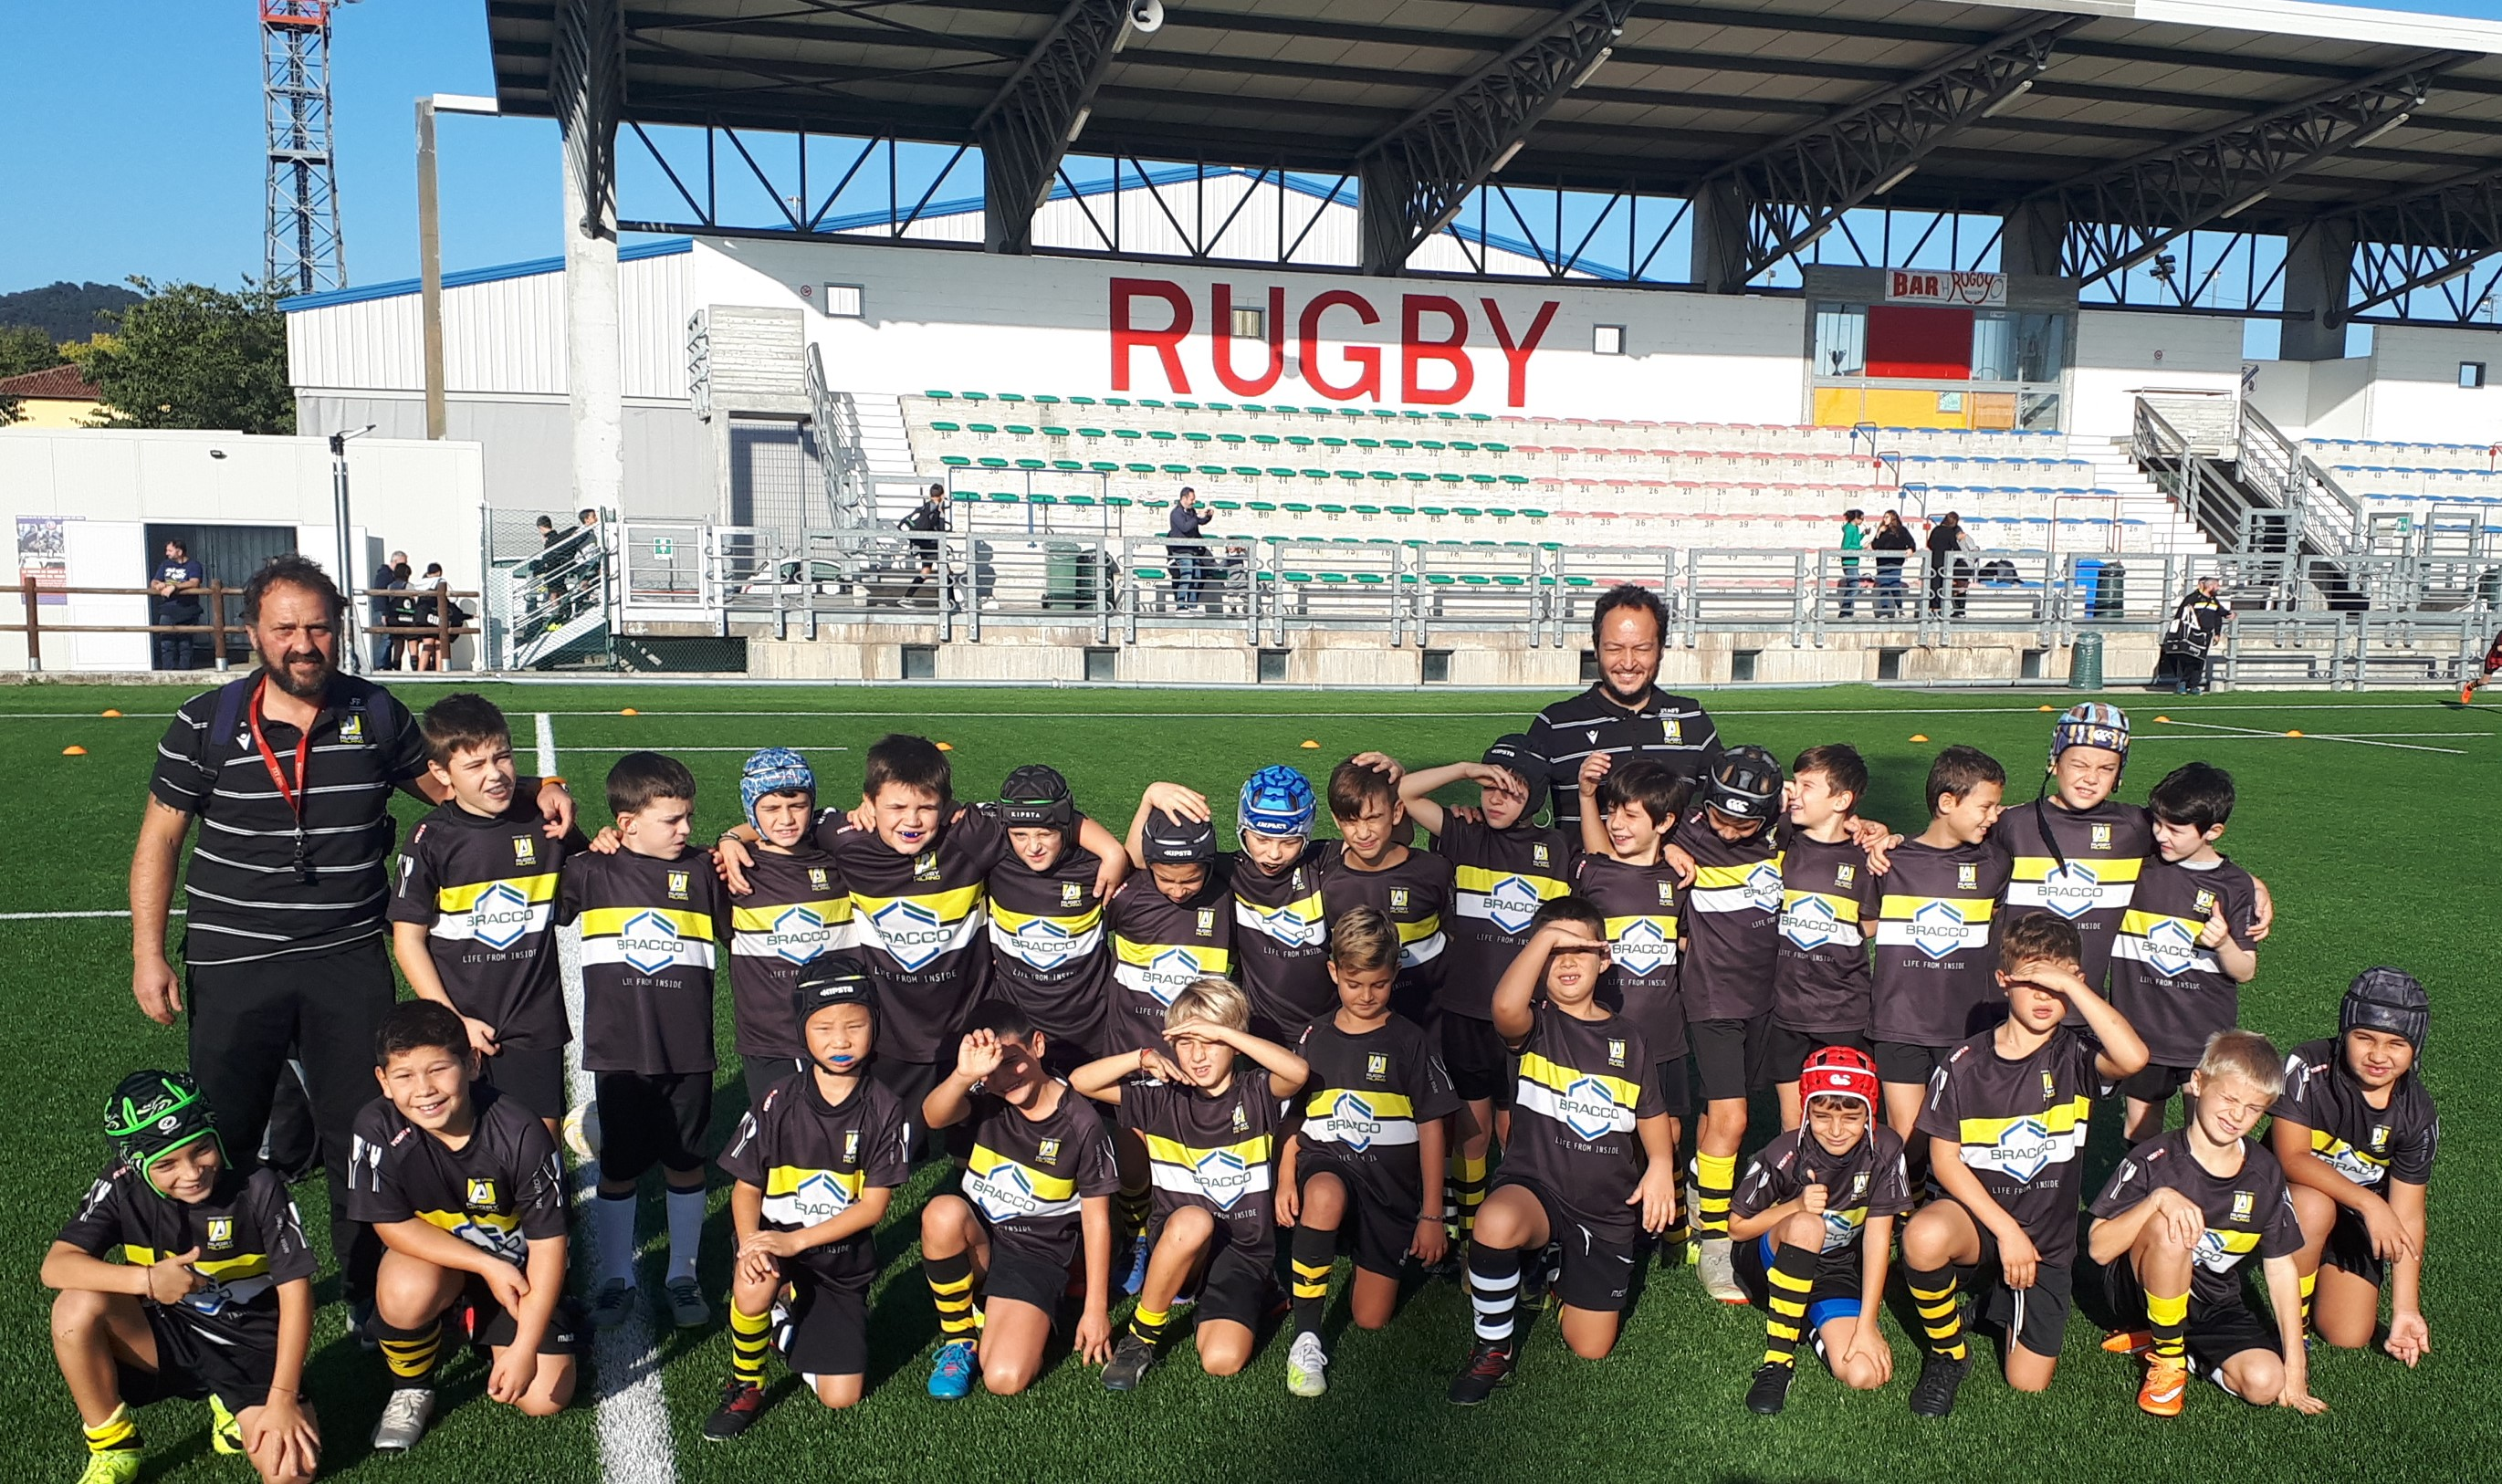 rugby 27 10 19 2